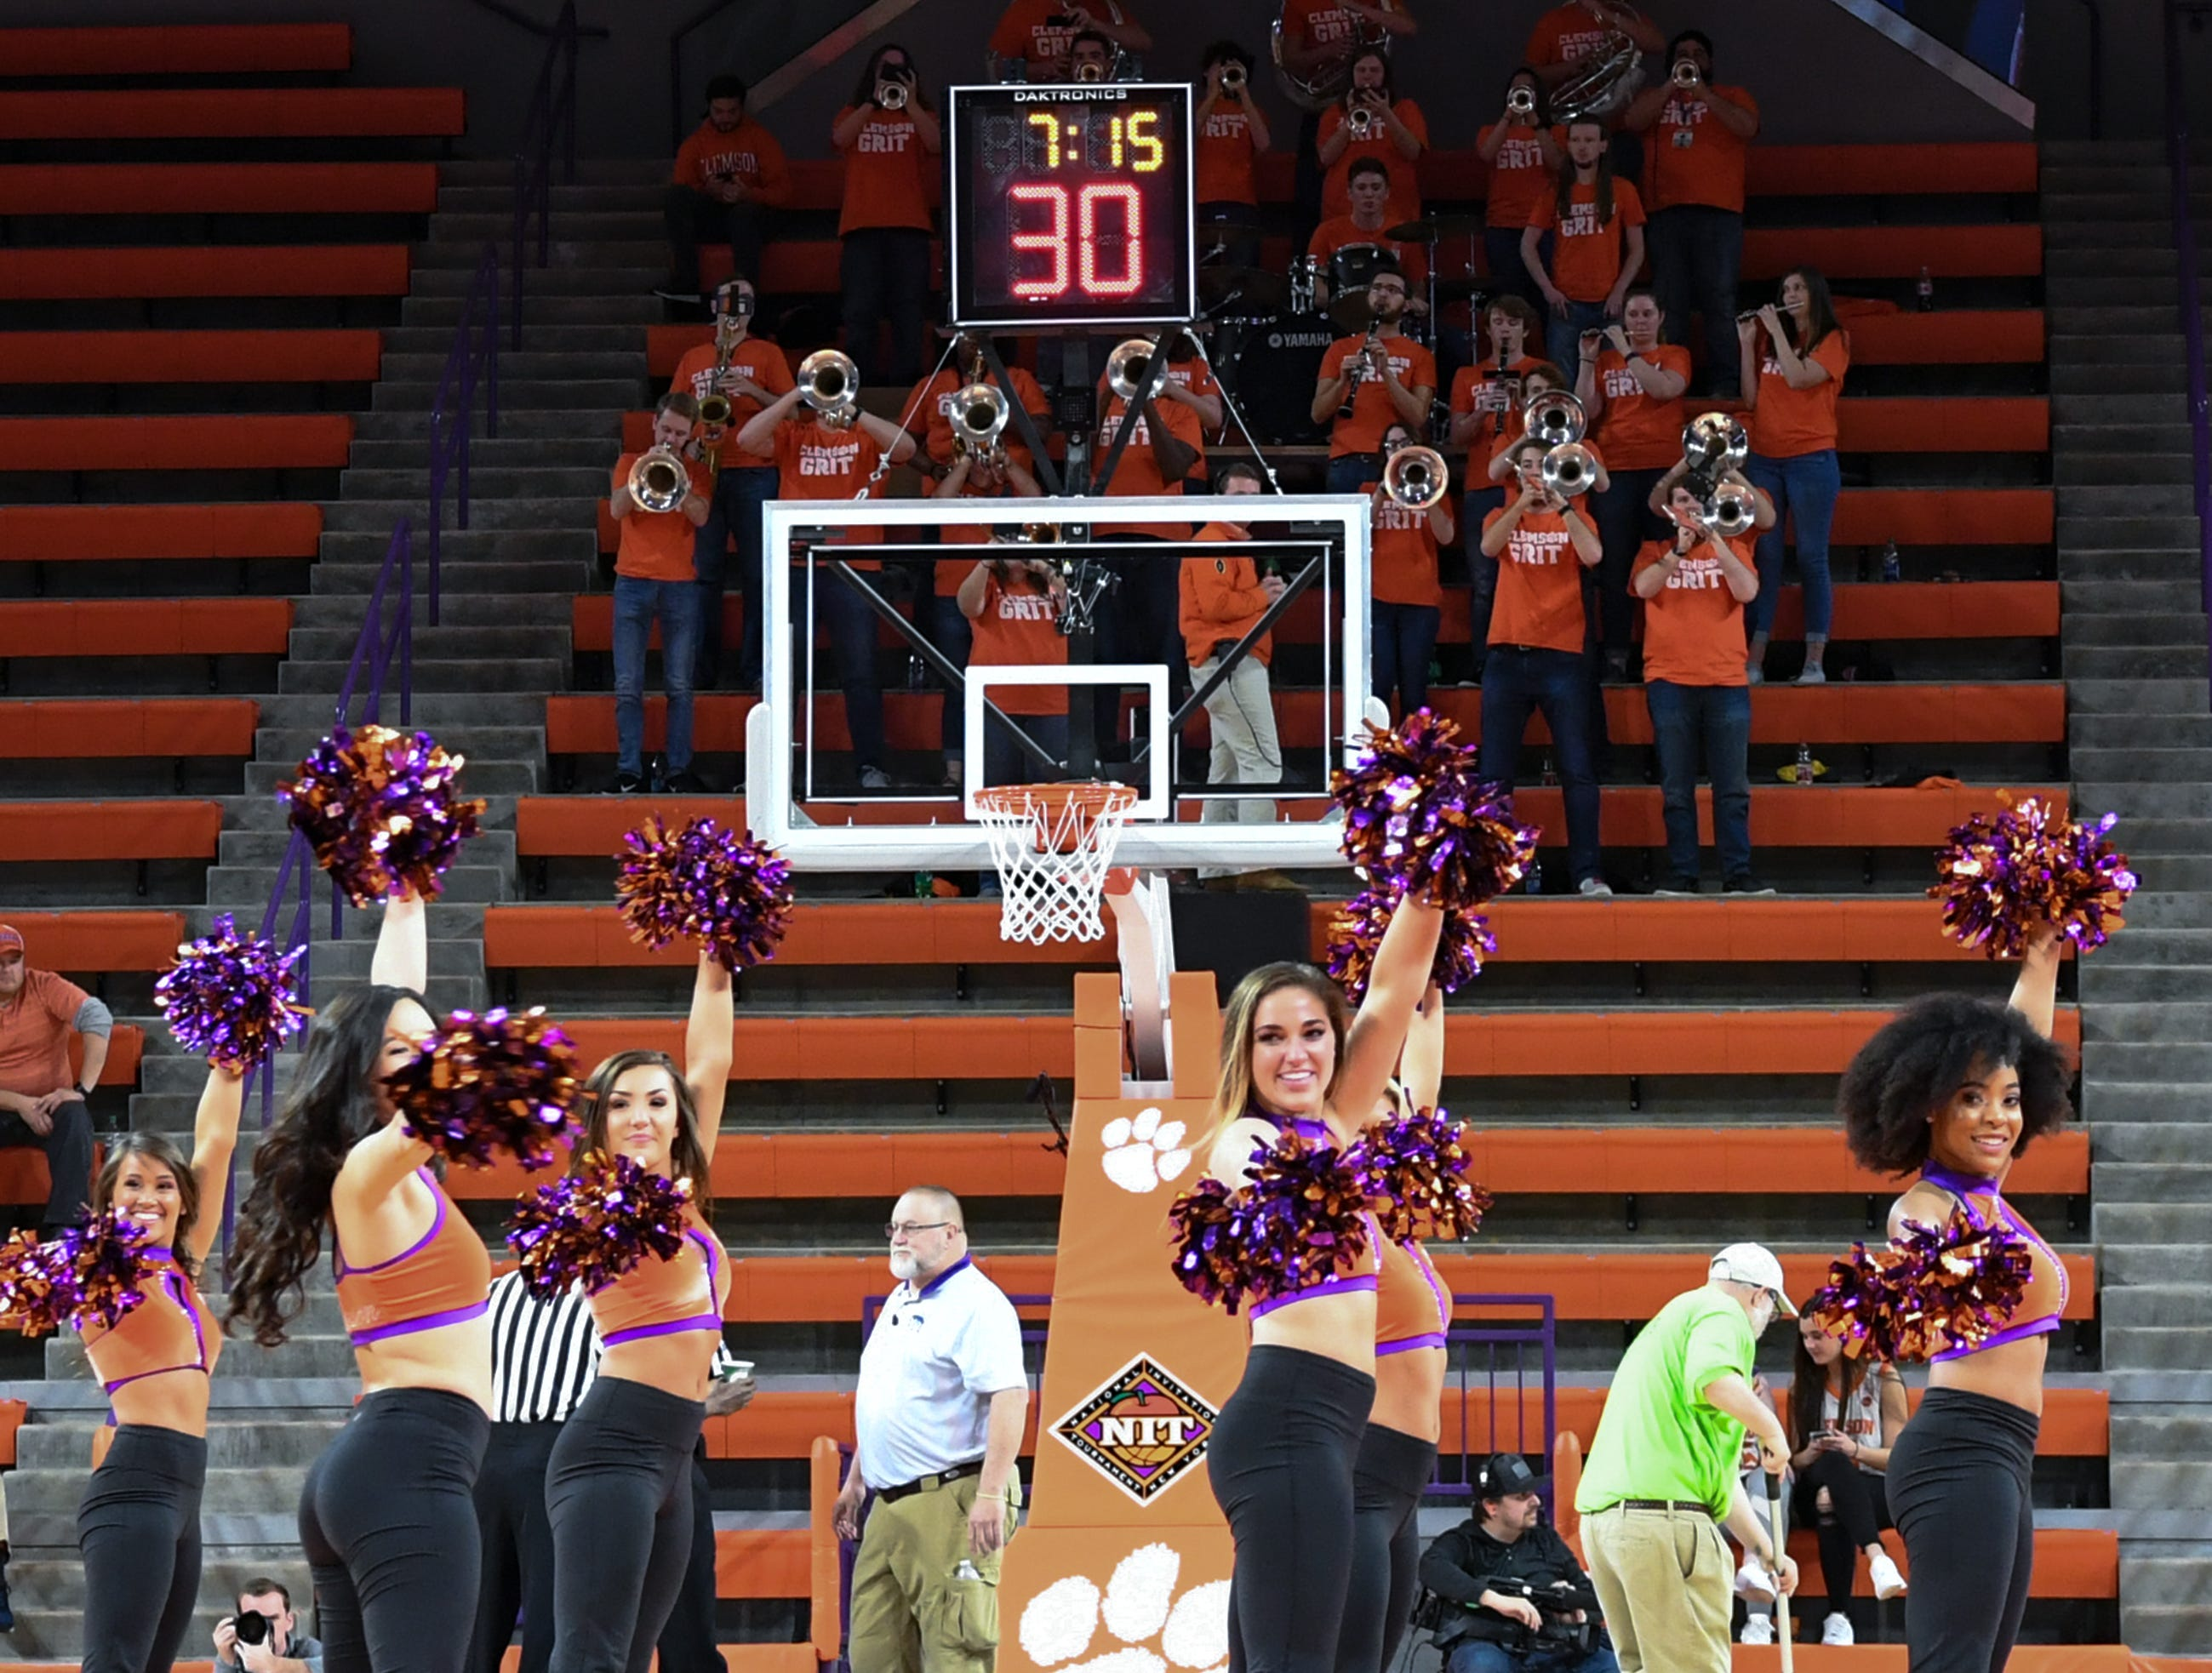 Clemson Rally Cats cheer at a break during the second half of the NIT at Littlejohn Coliseum in Clemson Tuesday, March 19, 2019.